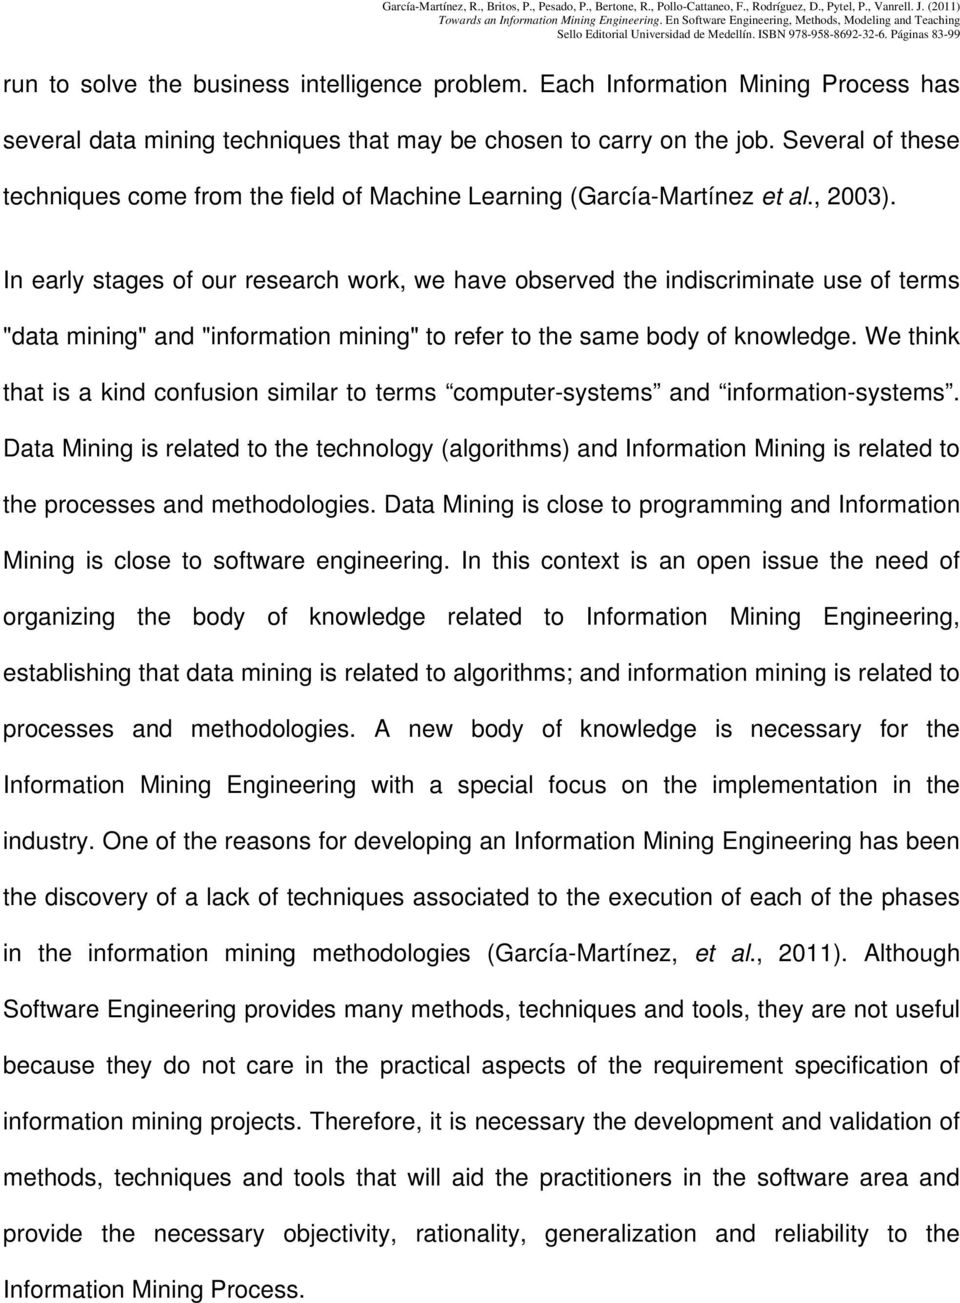 "In early stages of our research work, we have observed the indiscriminate use of terms ""data mining"" and ""information mining"" to refer to the same body of knowledge."